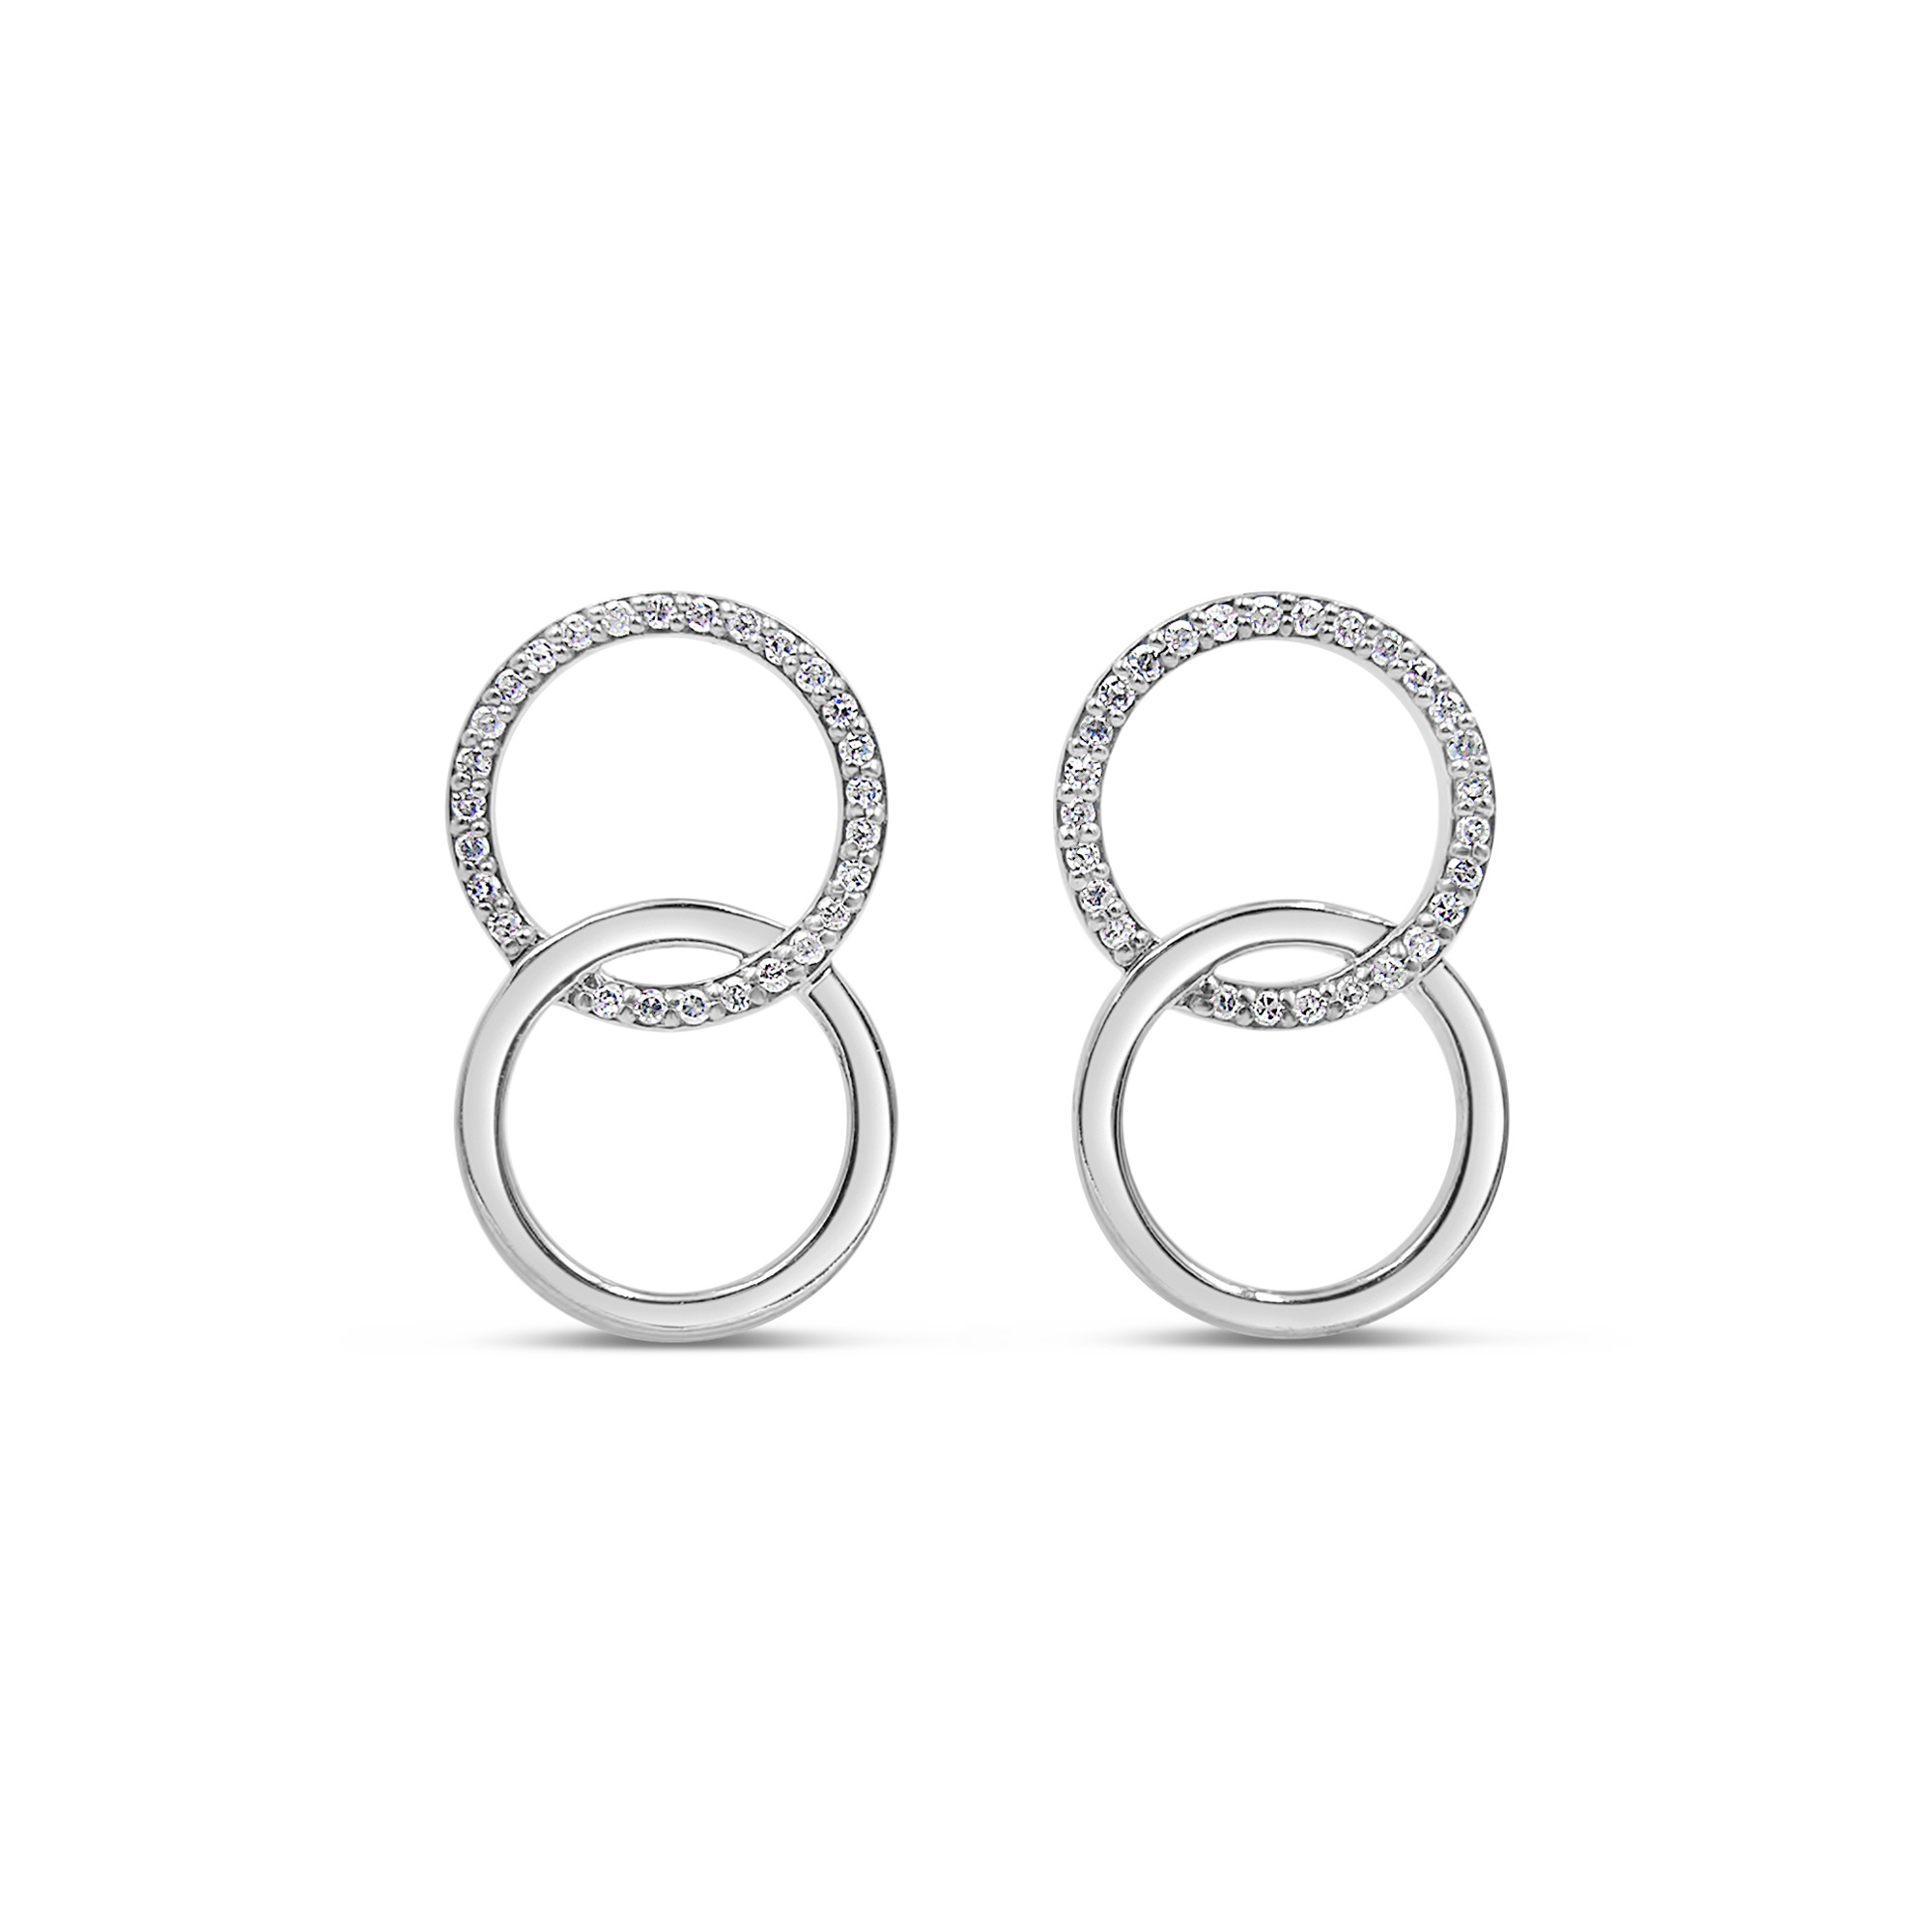 18 kt white gold earrings with 0.27 ct diamonds